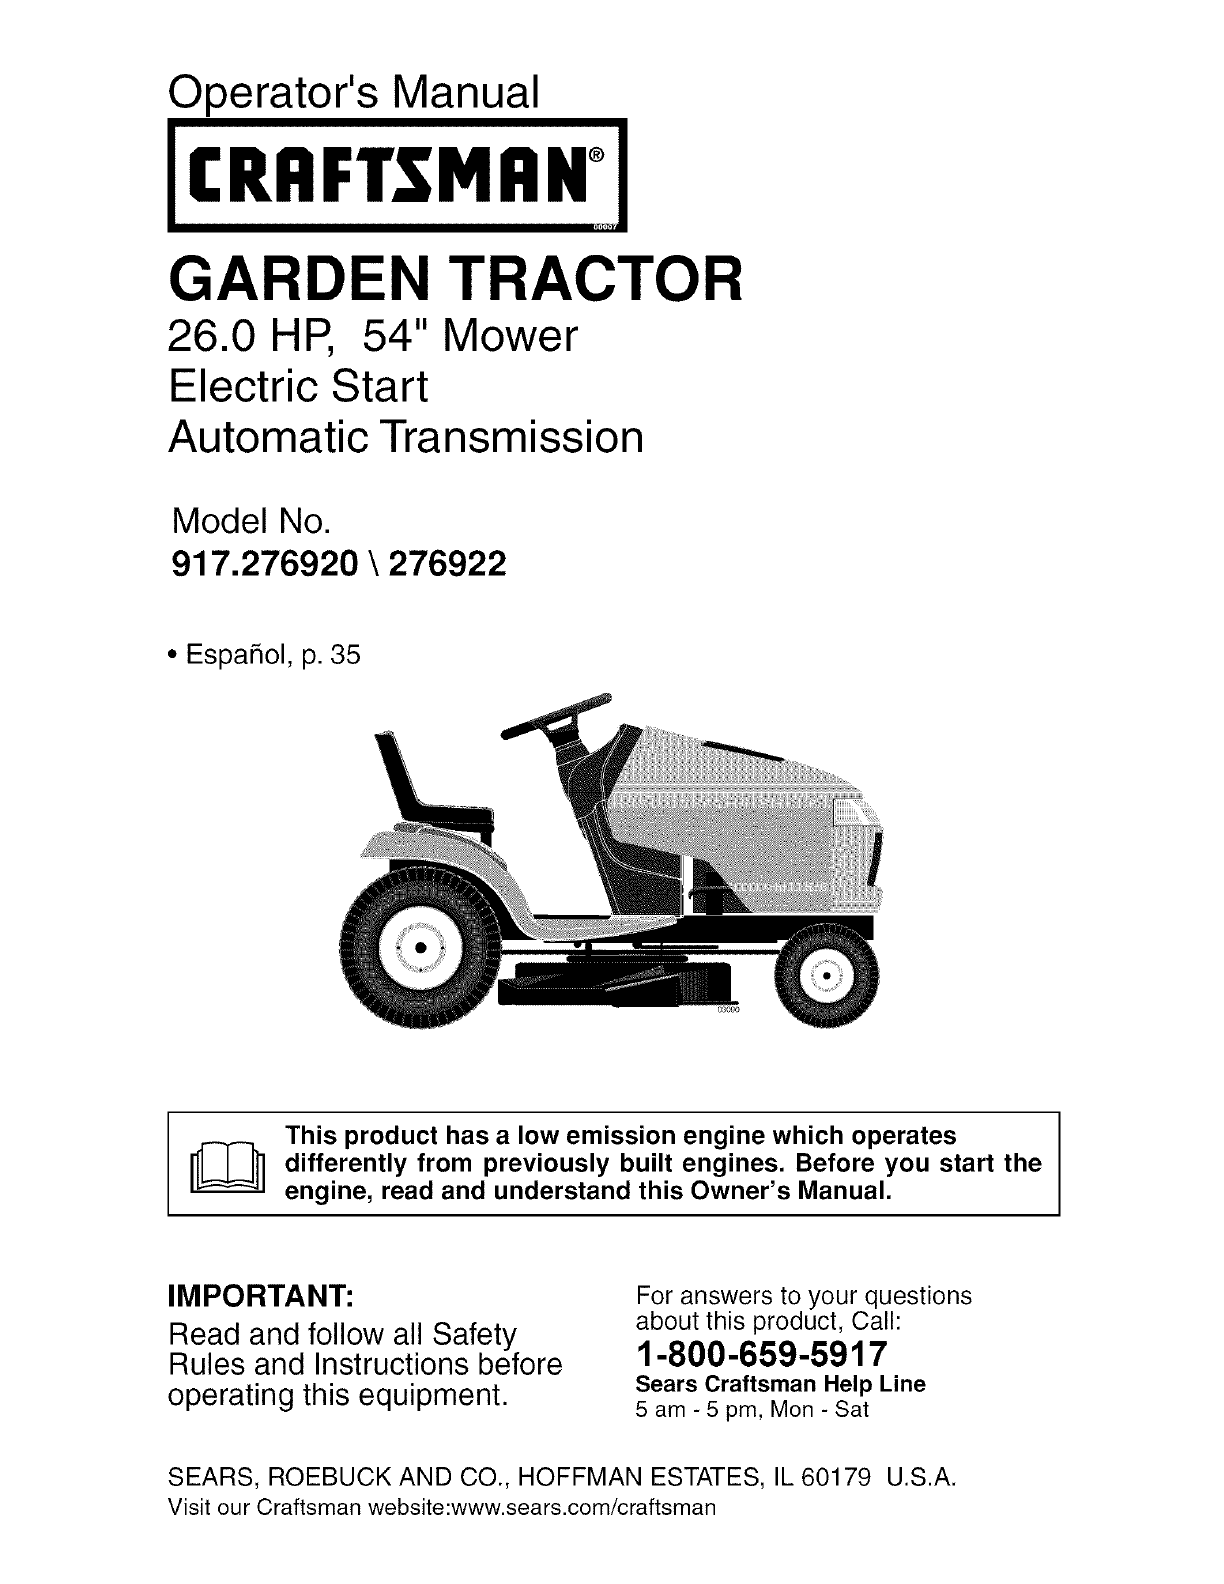 f19092f1 187b 4988 b623 7c6ea8bc6e04 bg1 craftsman lawn mower 917 276920 user guide manualsonline com craftsman dgs 6500 wiring diagram at soozxer.org